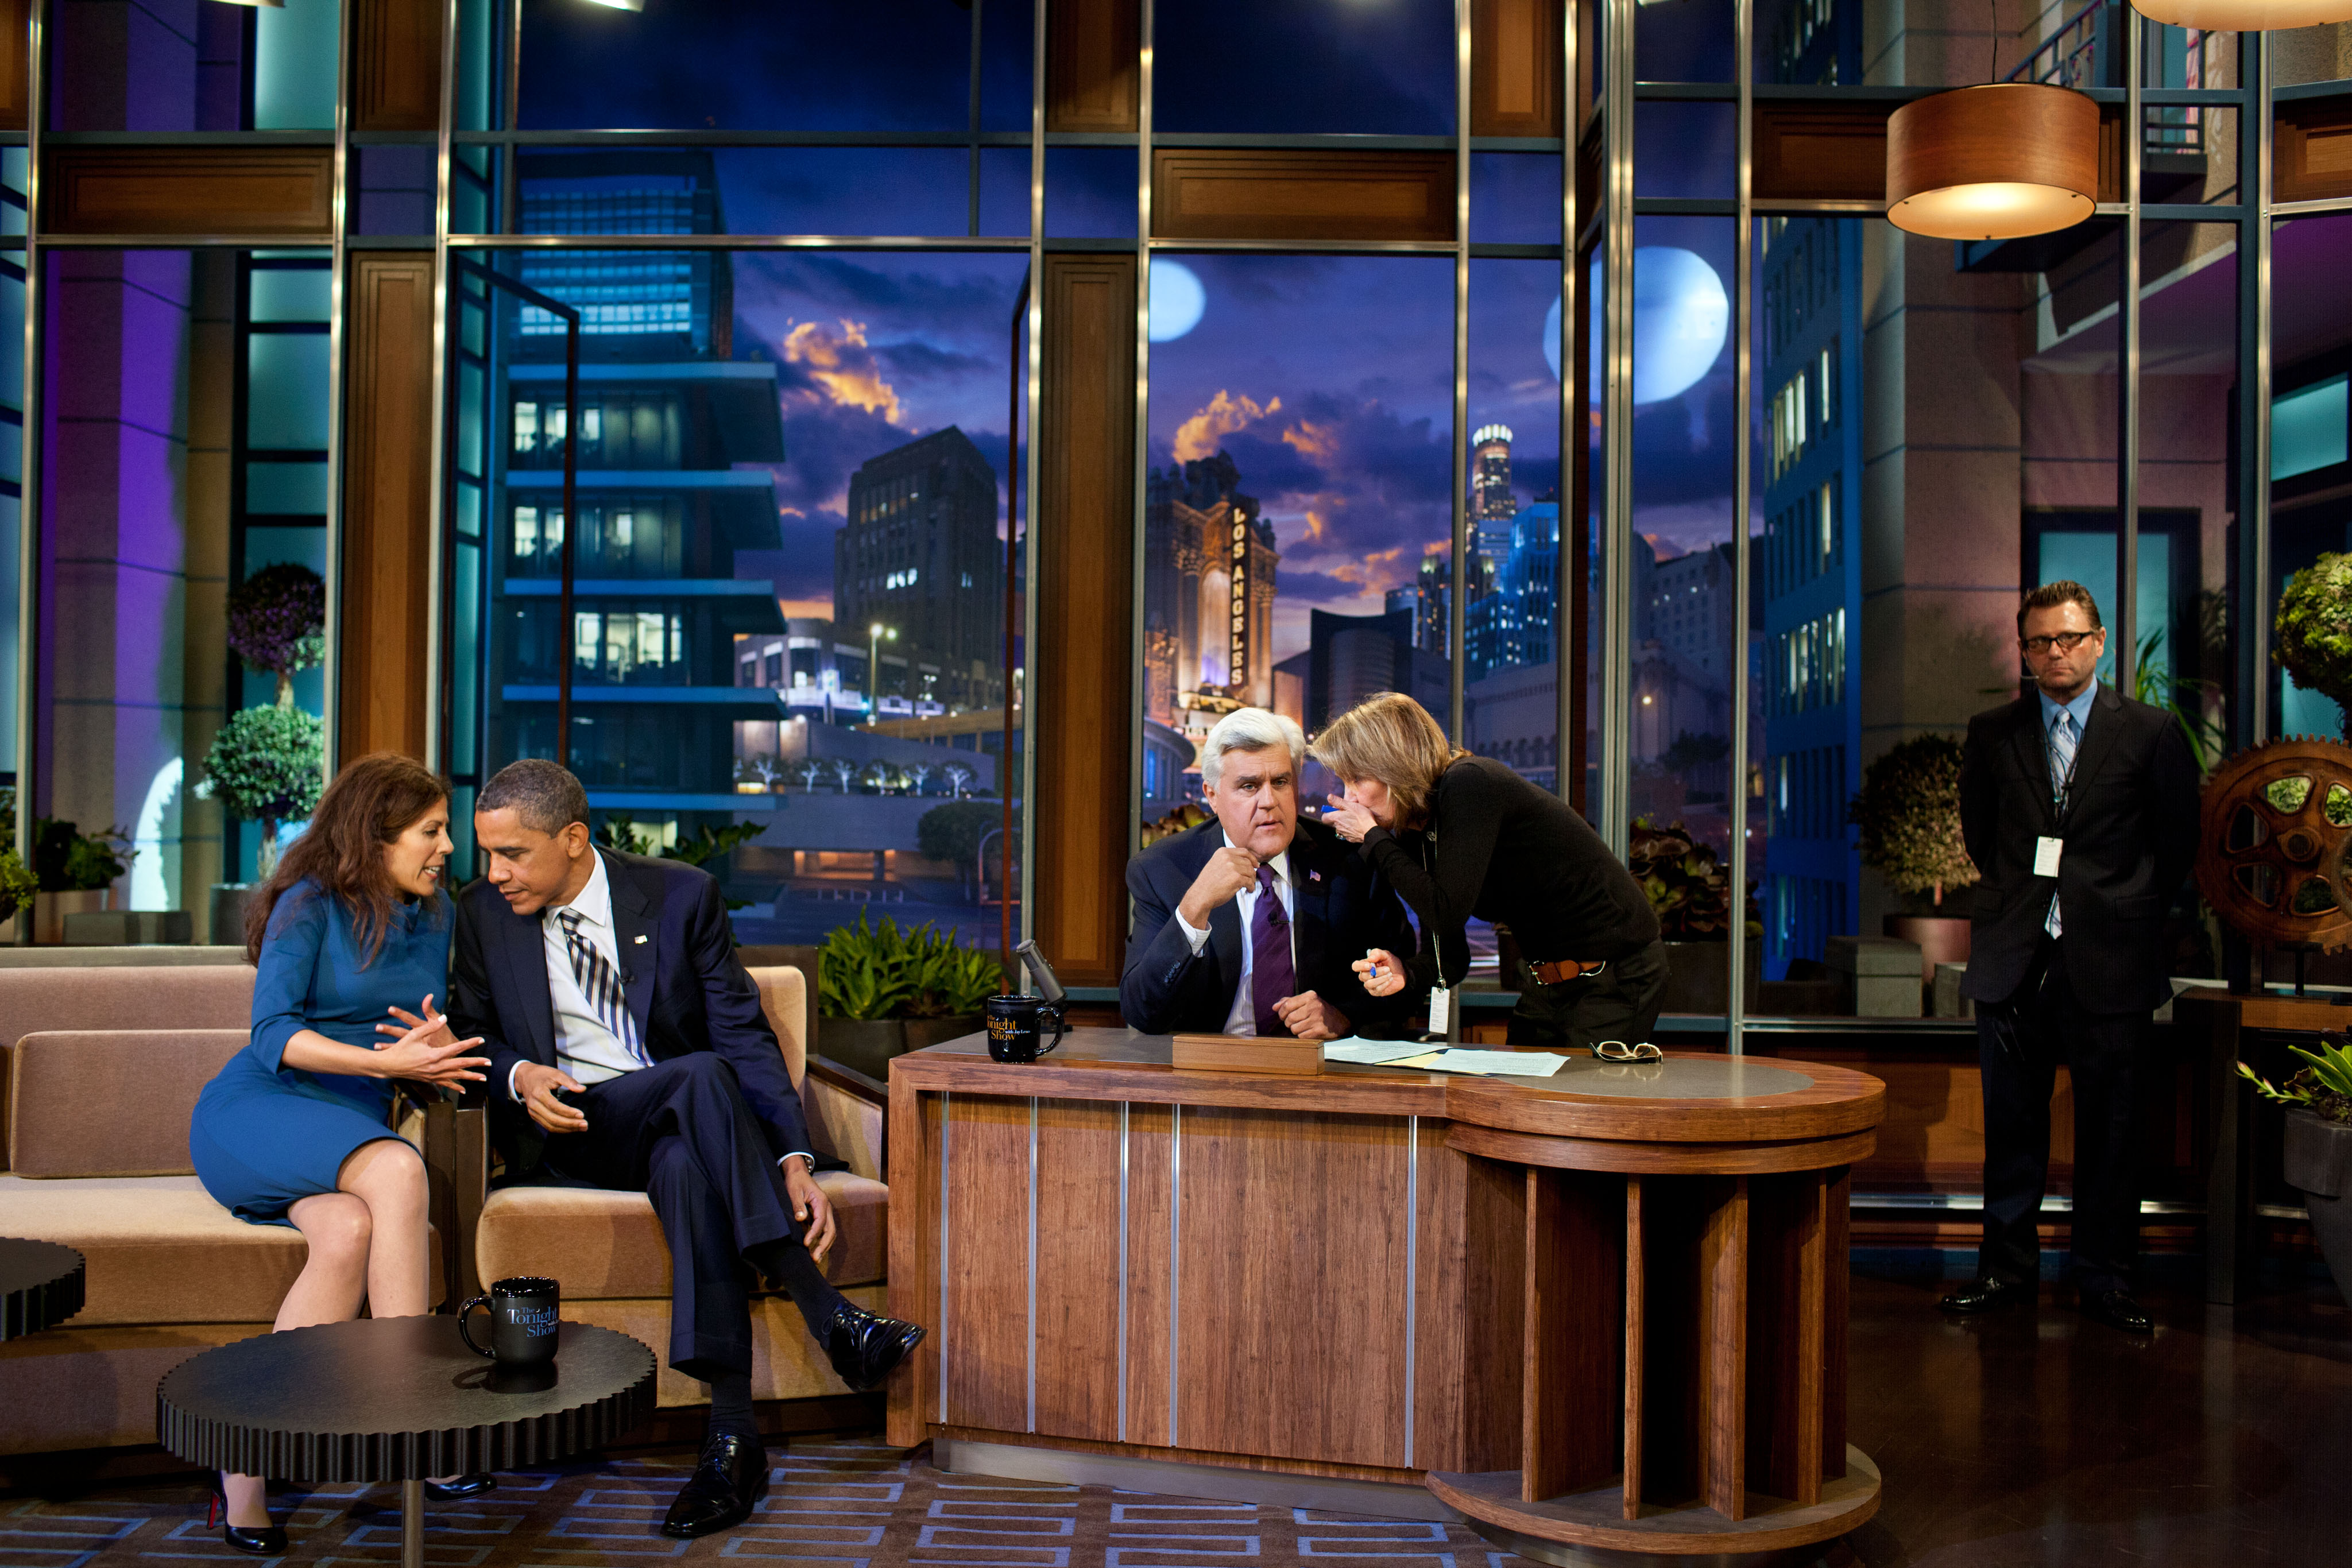 File:Obama On The Tonight Show.jpg - Wikimedia Commons